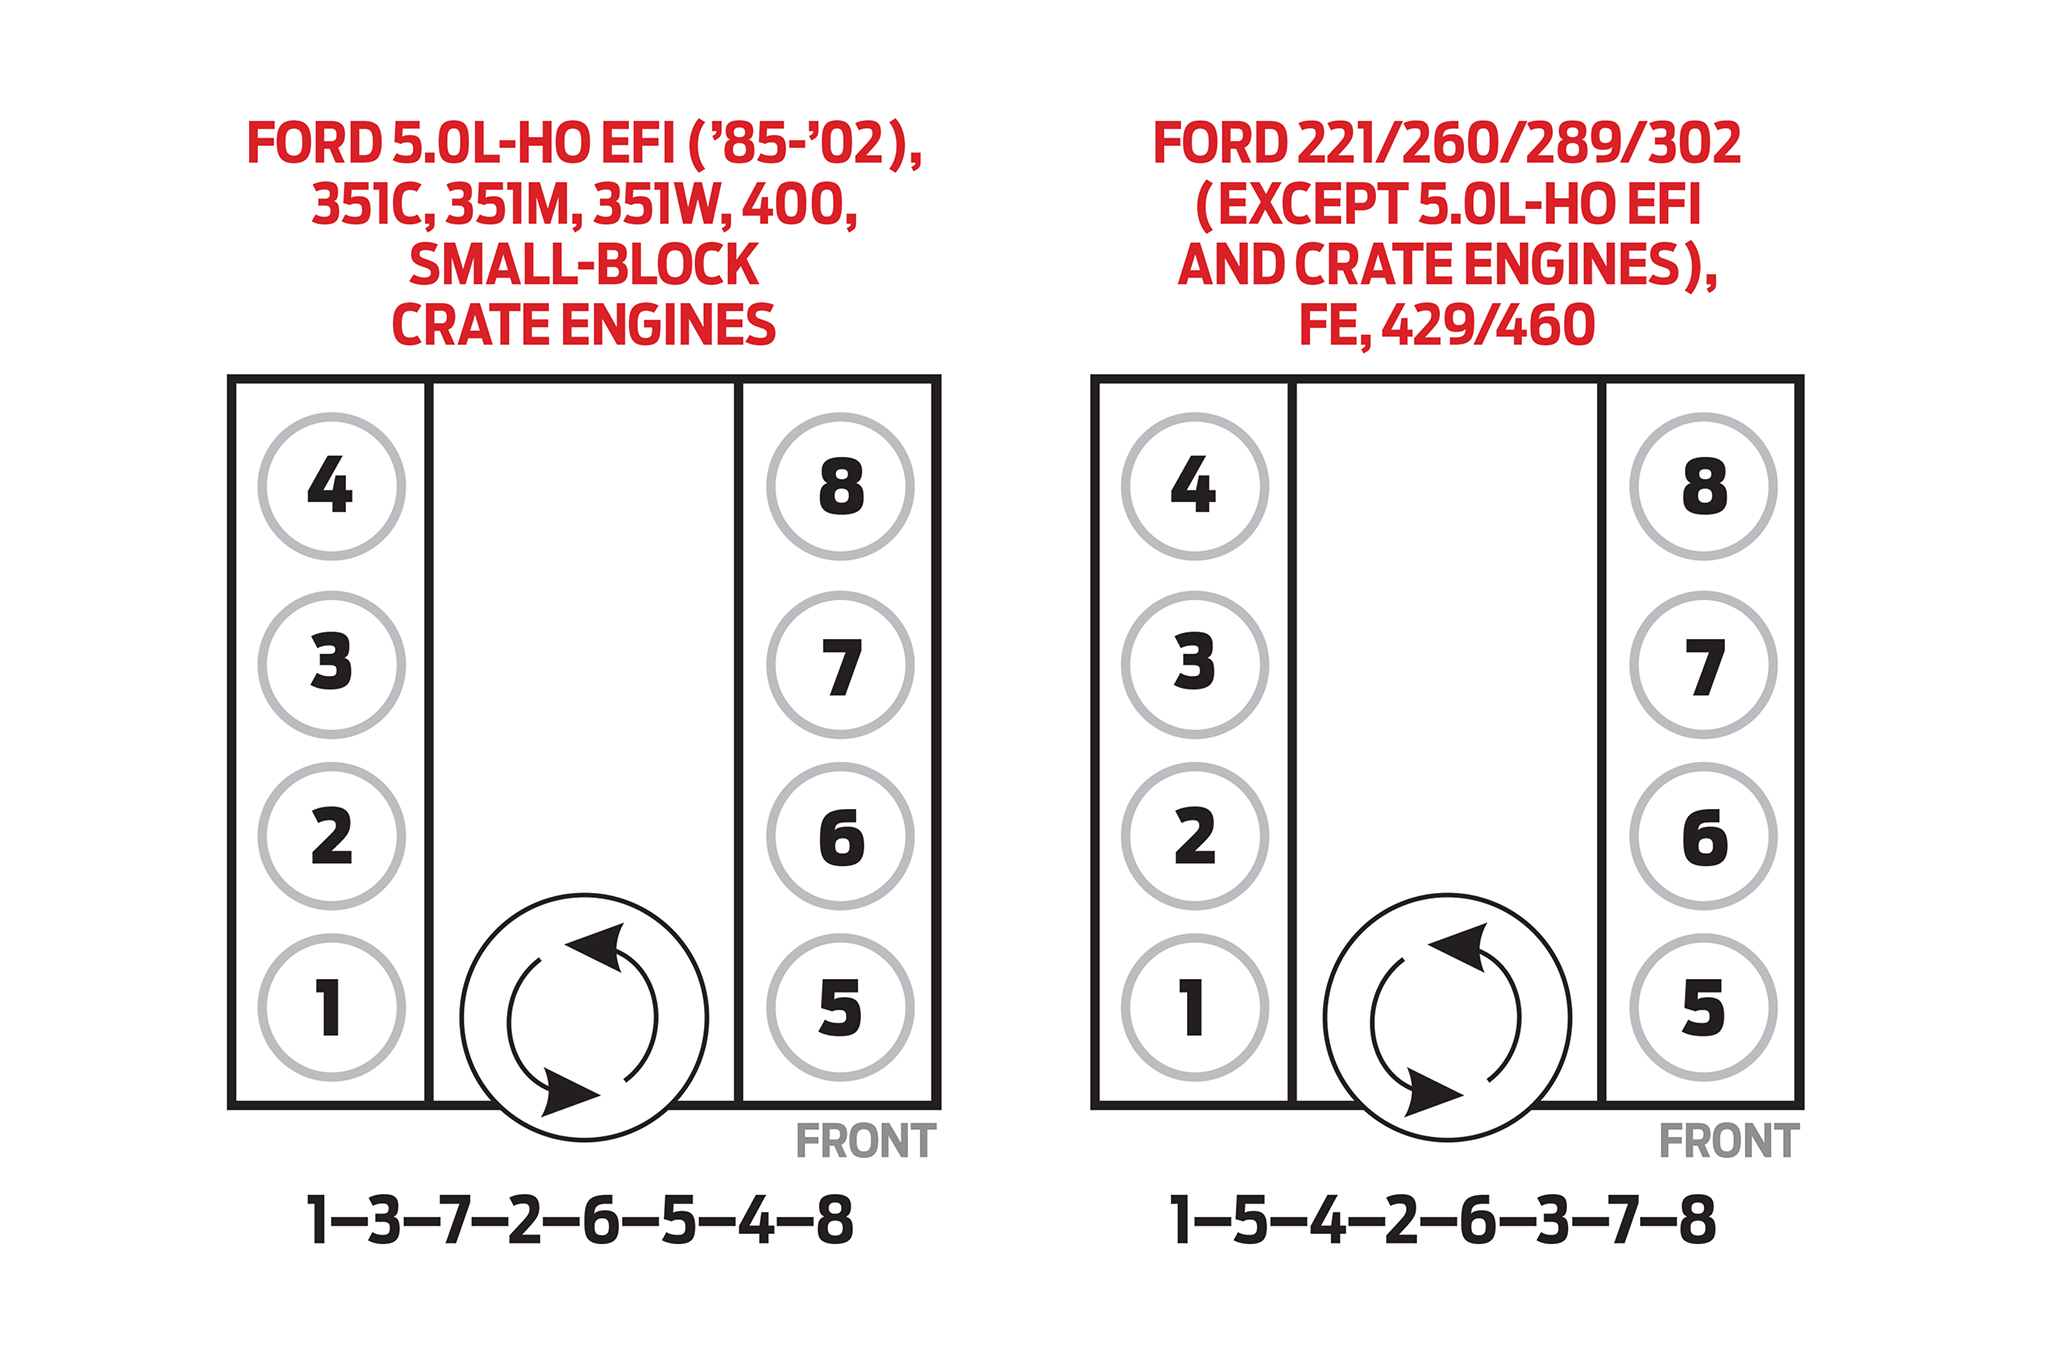 ford 289 distributor wiring diagram puma central locking hot rod to the rescue this late model 5 0l sfi system runs numbers its v8 cylinders consecutively down each bank starting with no 1 on